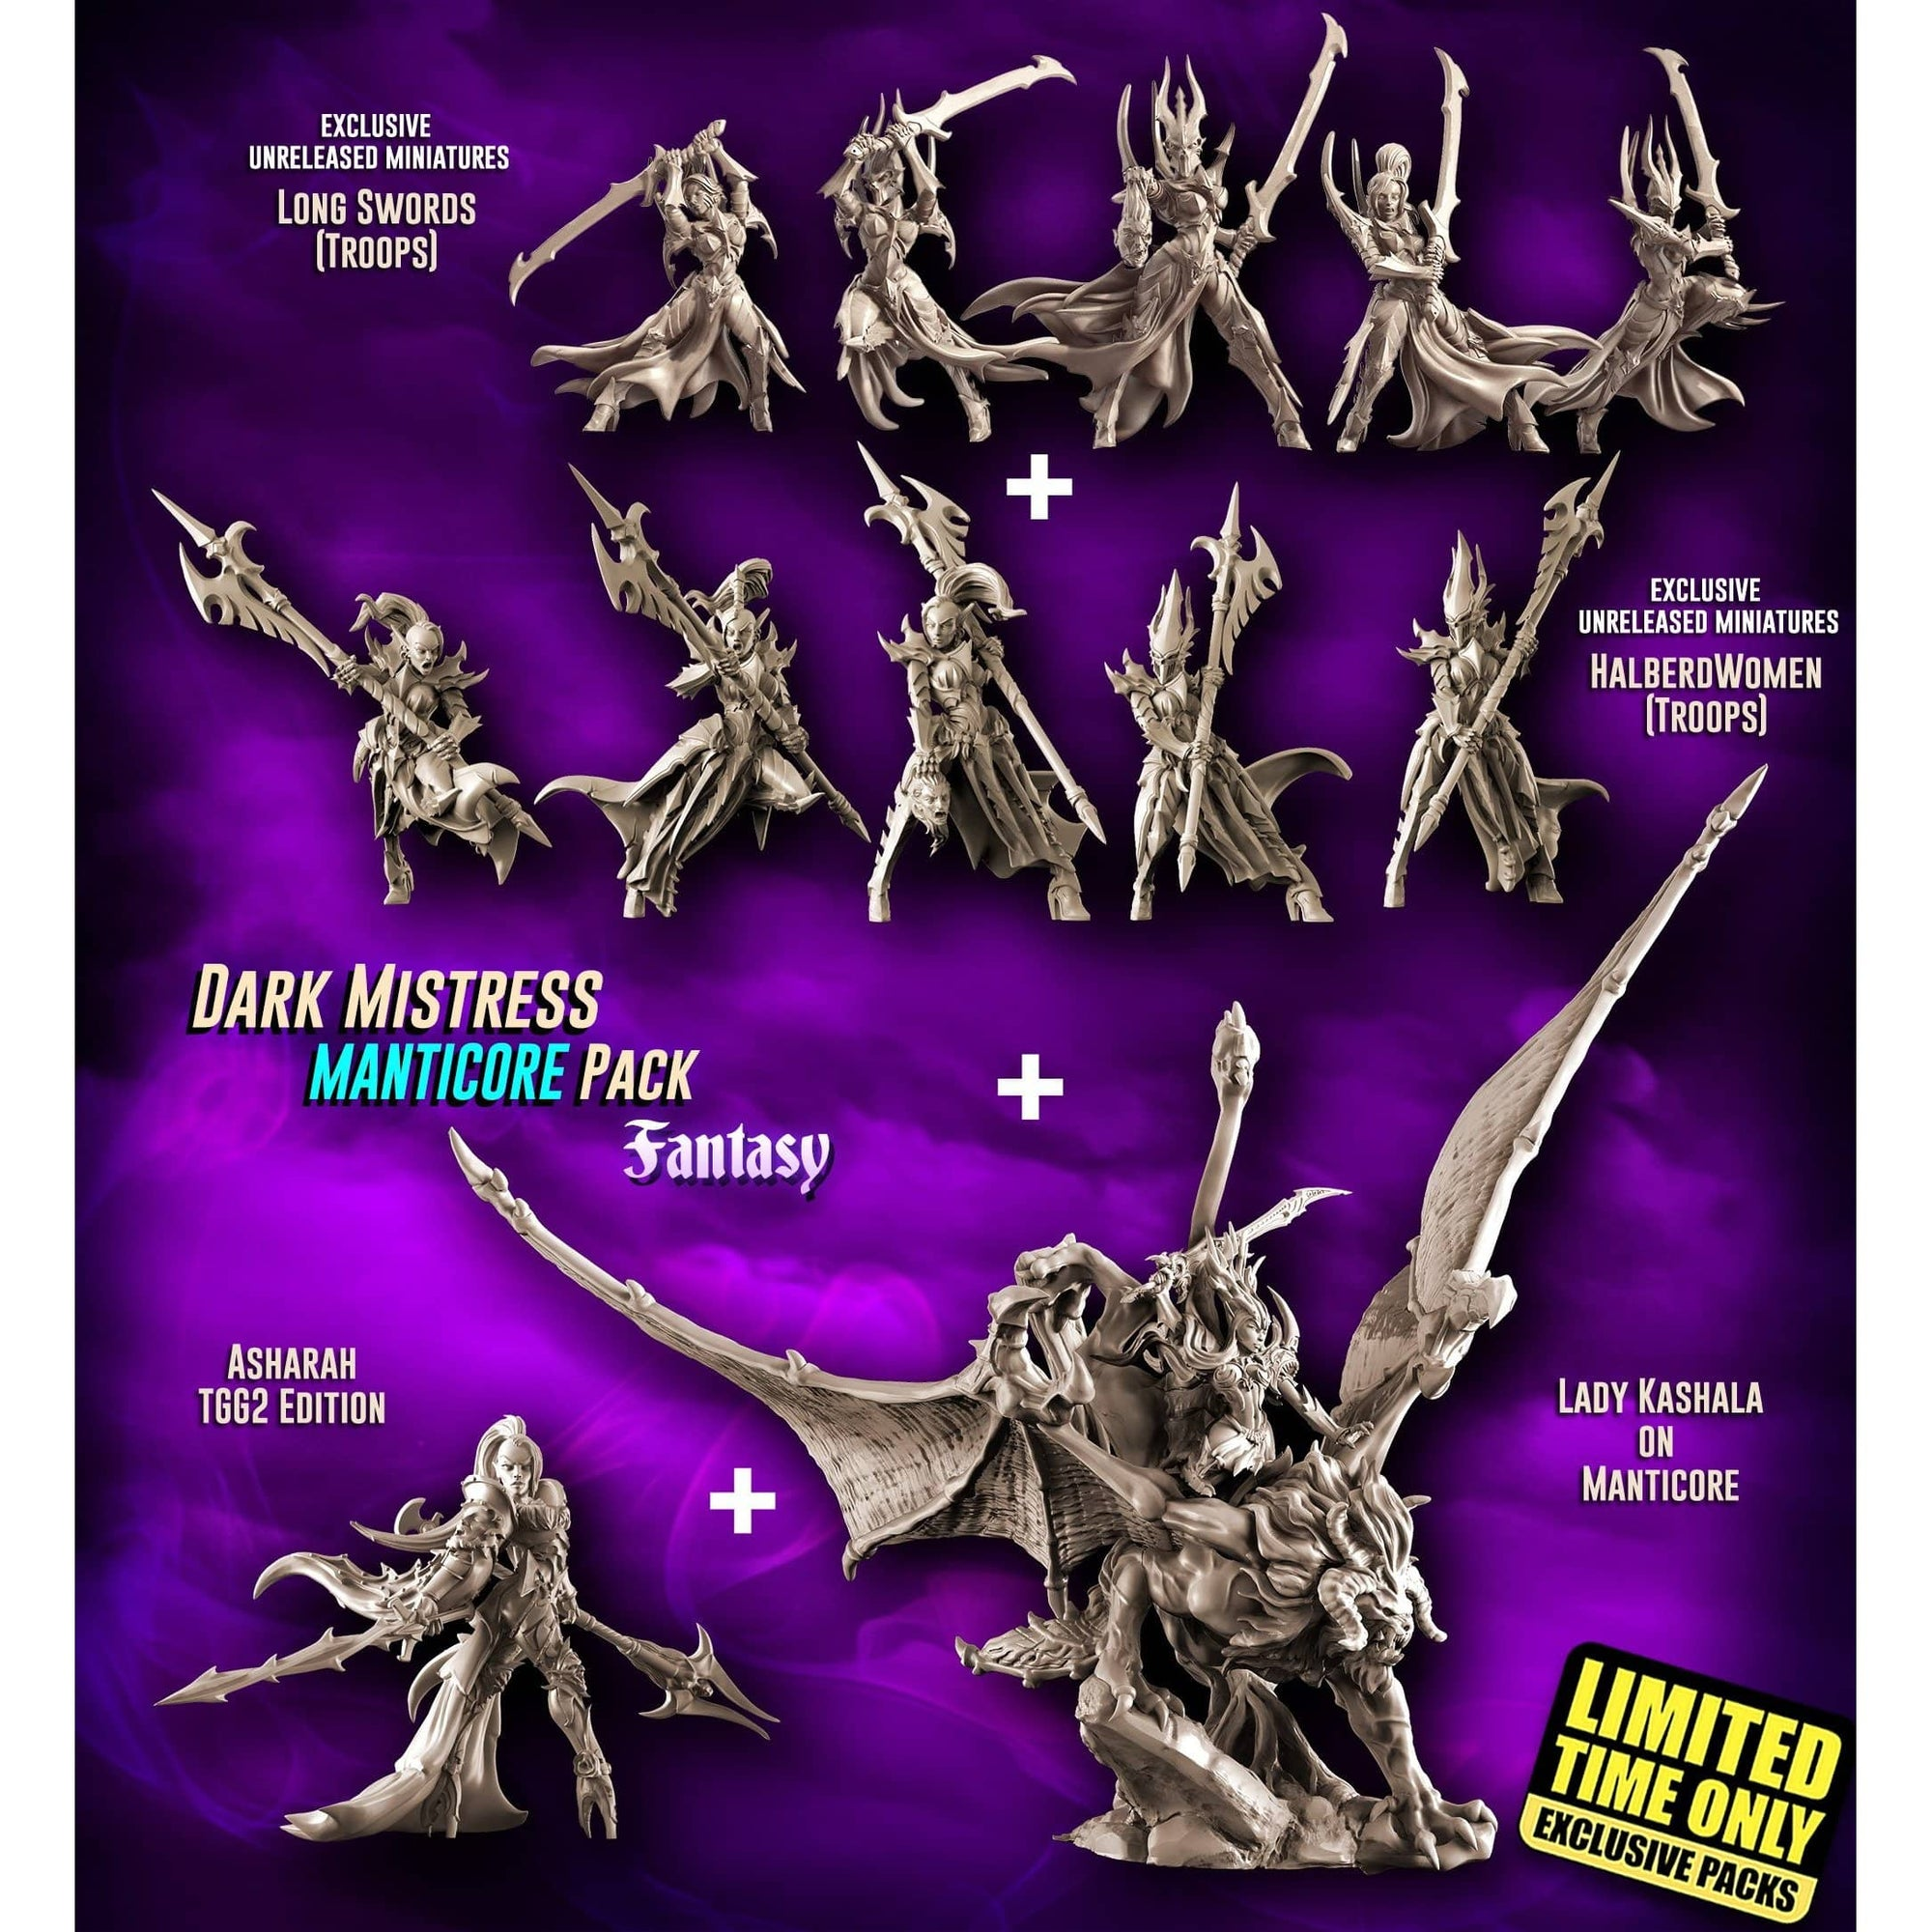 EXCLUSIVE Dark Mistress MANTICORE Pack (DE - F) - Raging Heroes